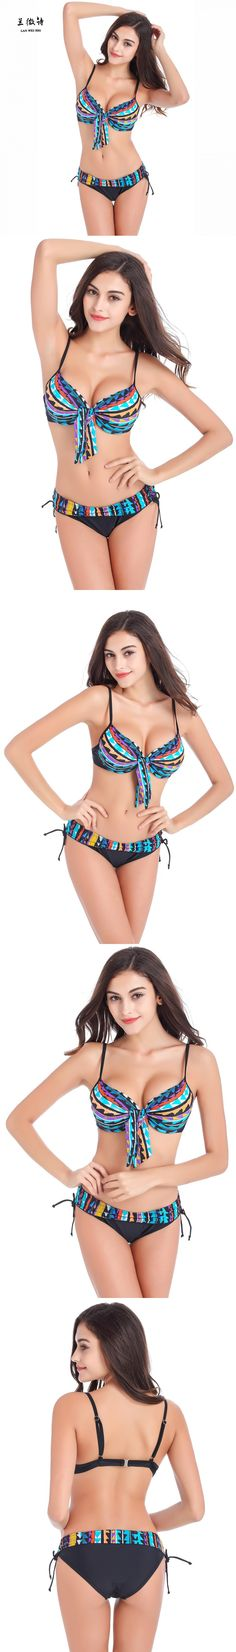 #Bikinis Women 2016 Print Floral Bikini Women Swimsuits Brazilian Push Up Bikini Set Bathing Suits Plus Size Swimwear Female $17.88